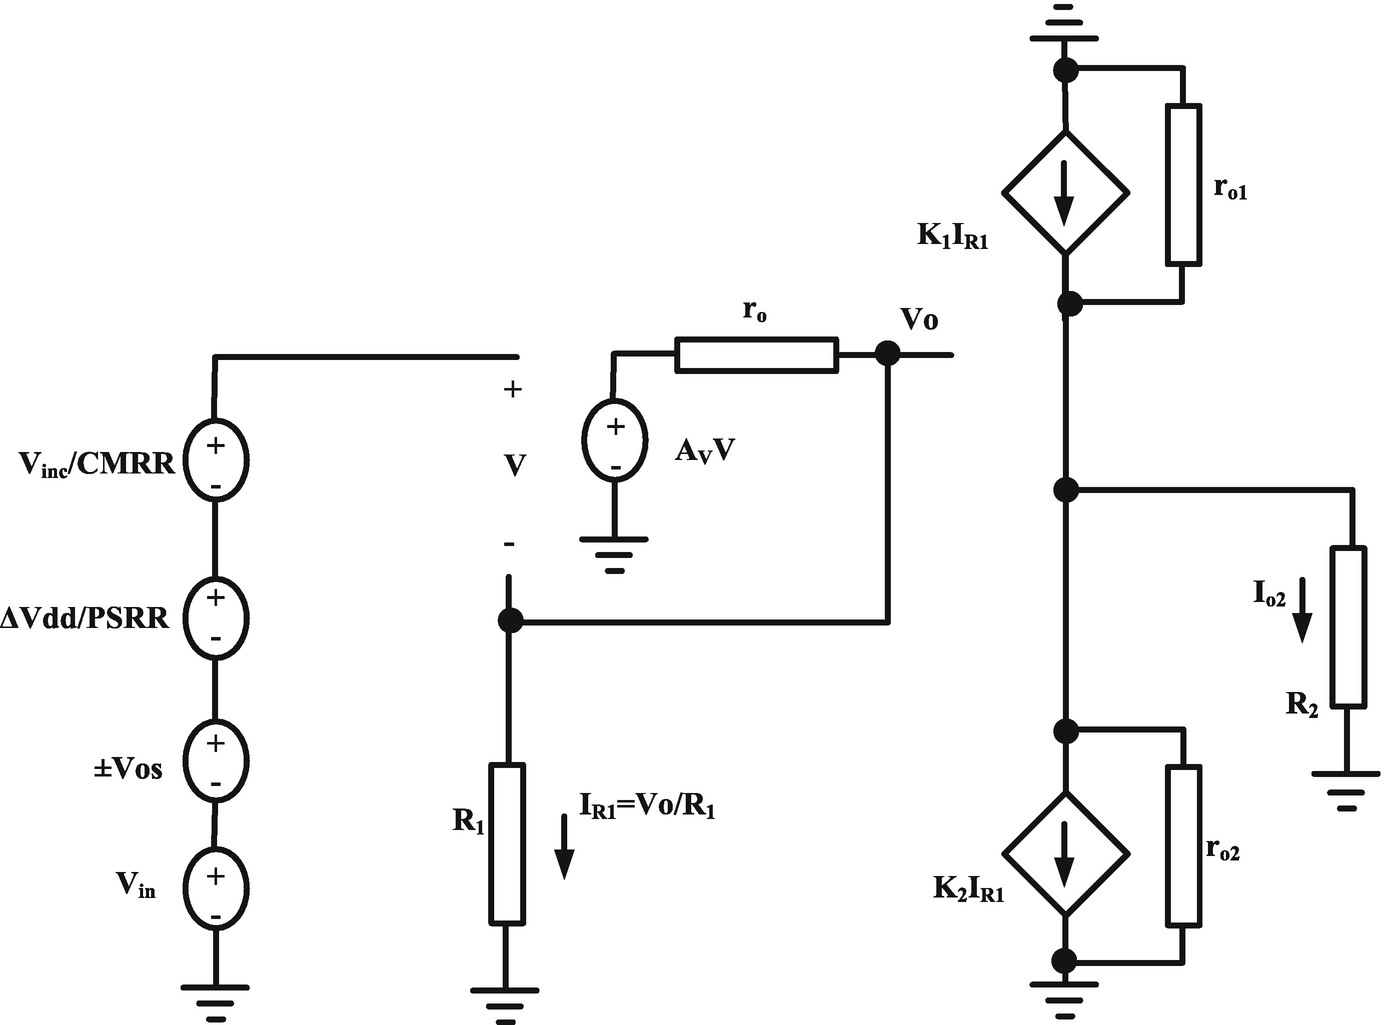 Cmia Based On Op Amp Power Supply Current Sensing Technique Bootstrapped Resistor A Source Or Open Circuit Image In New Window